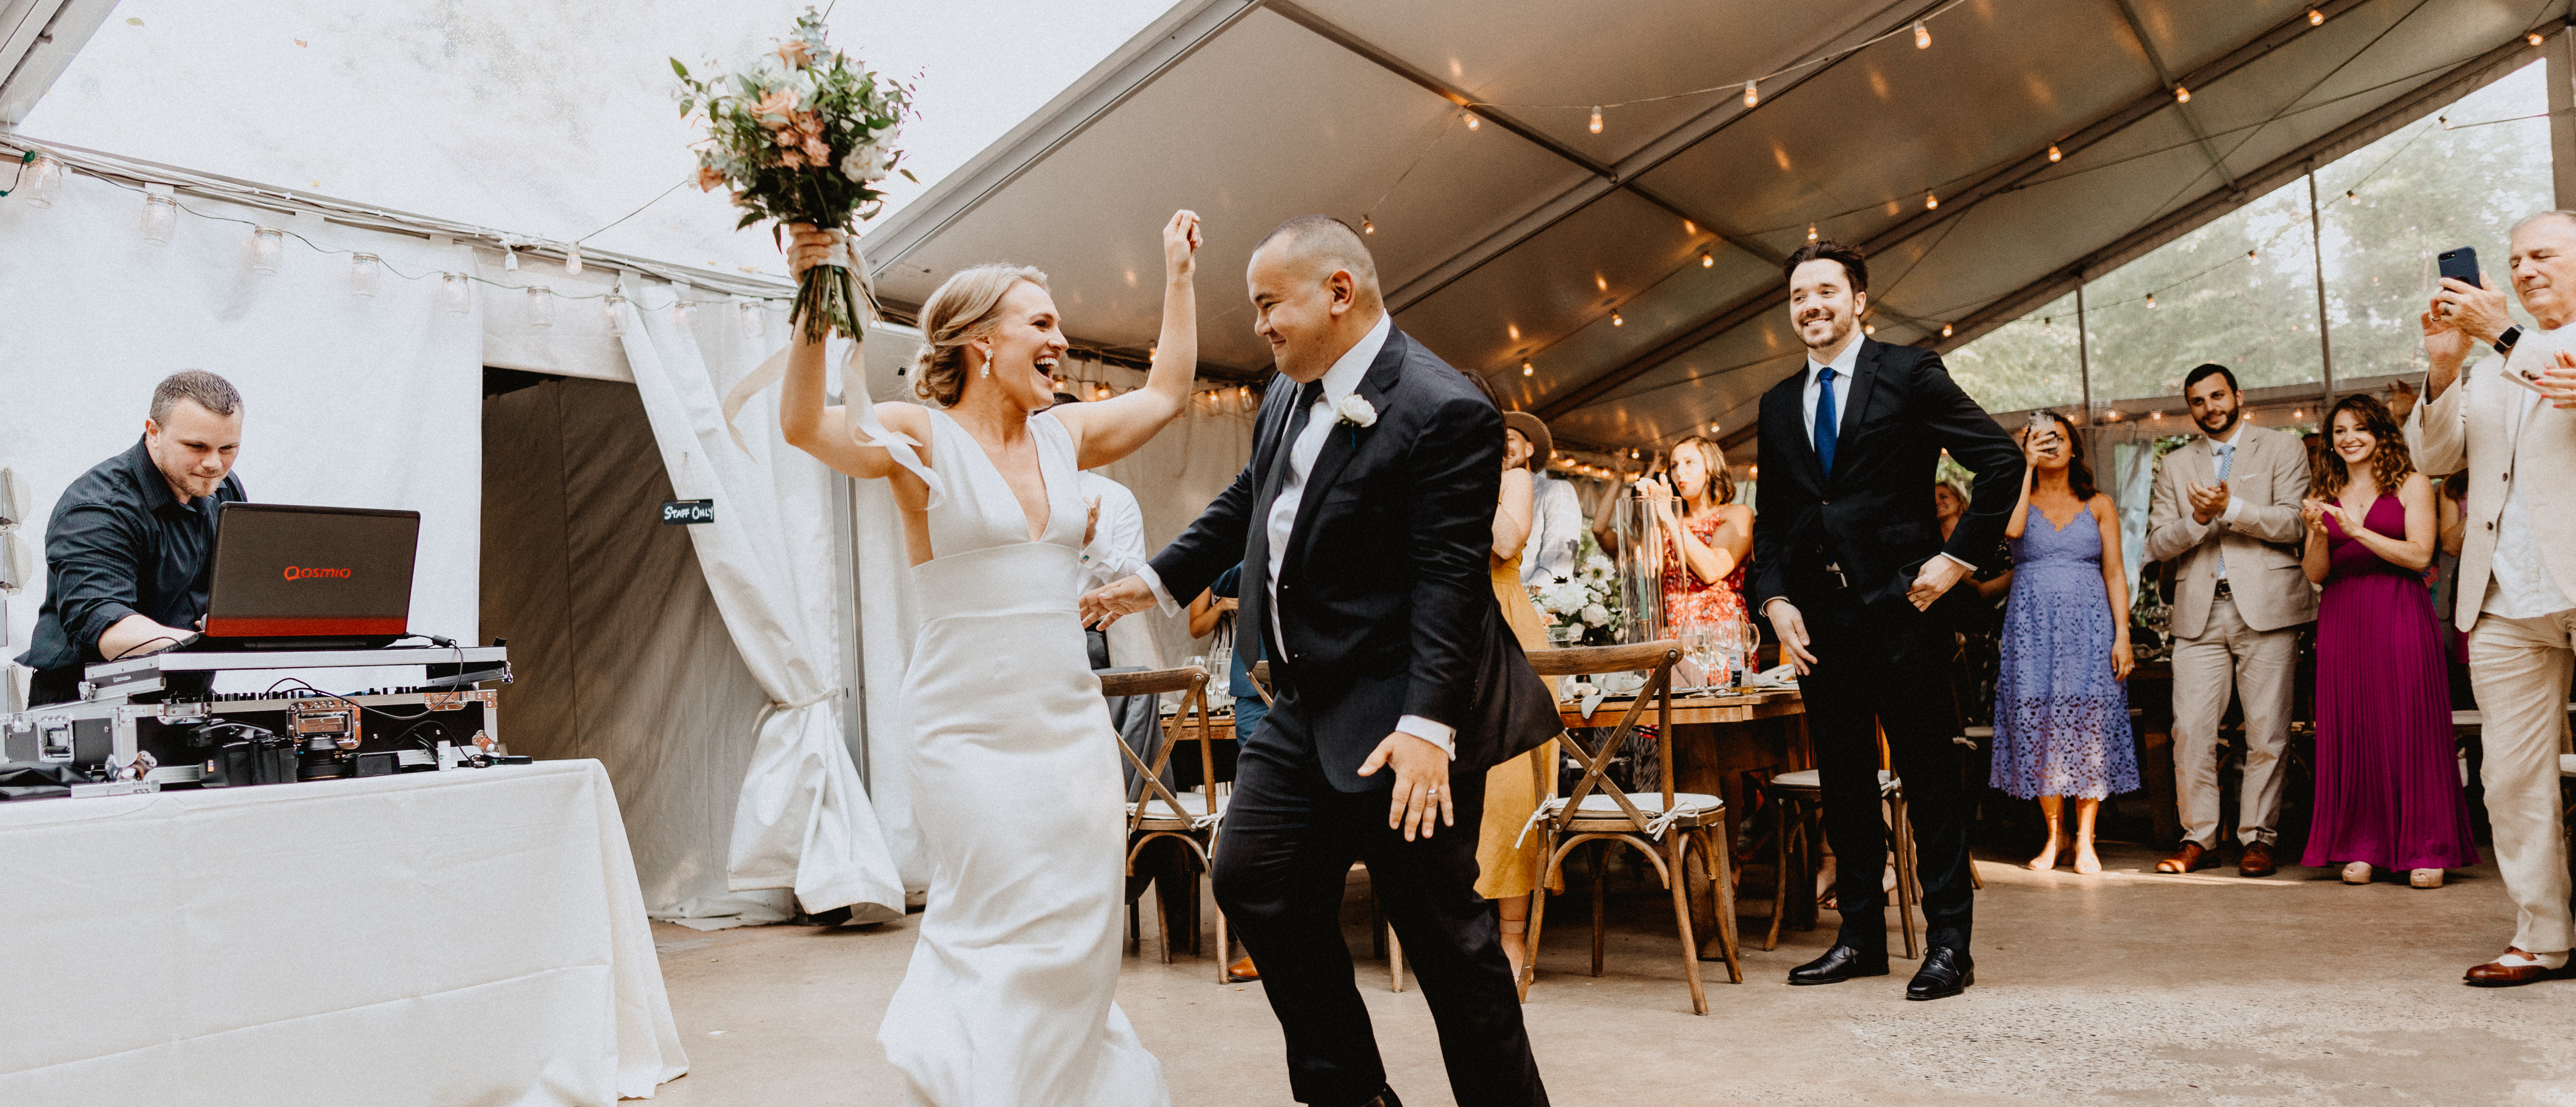 Top 10 Wedding Entrance Songs: Fall 2019